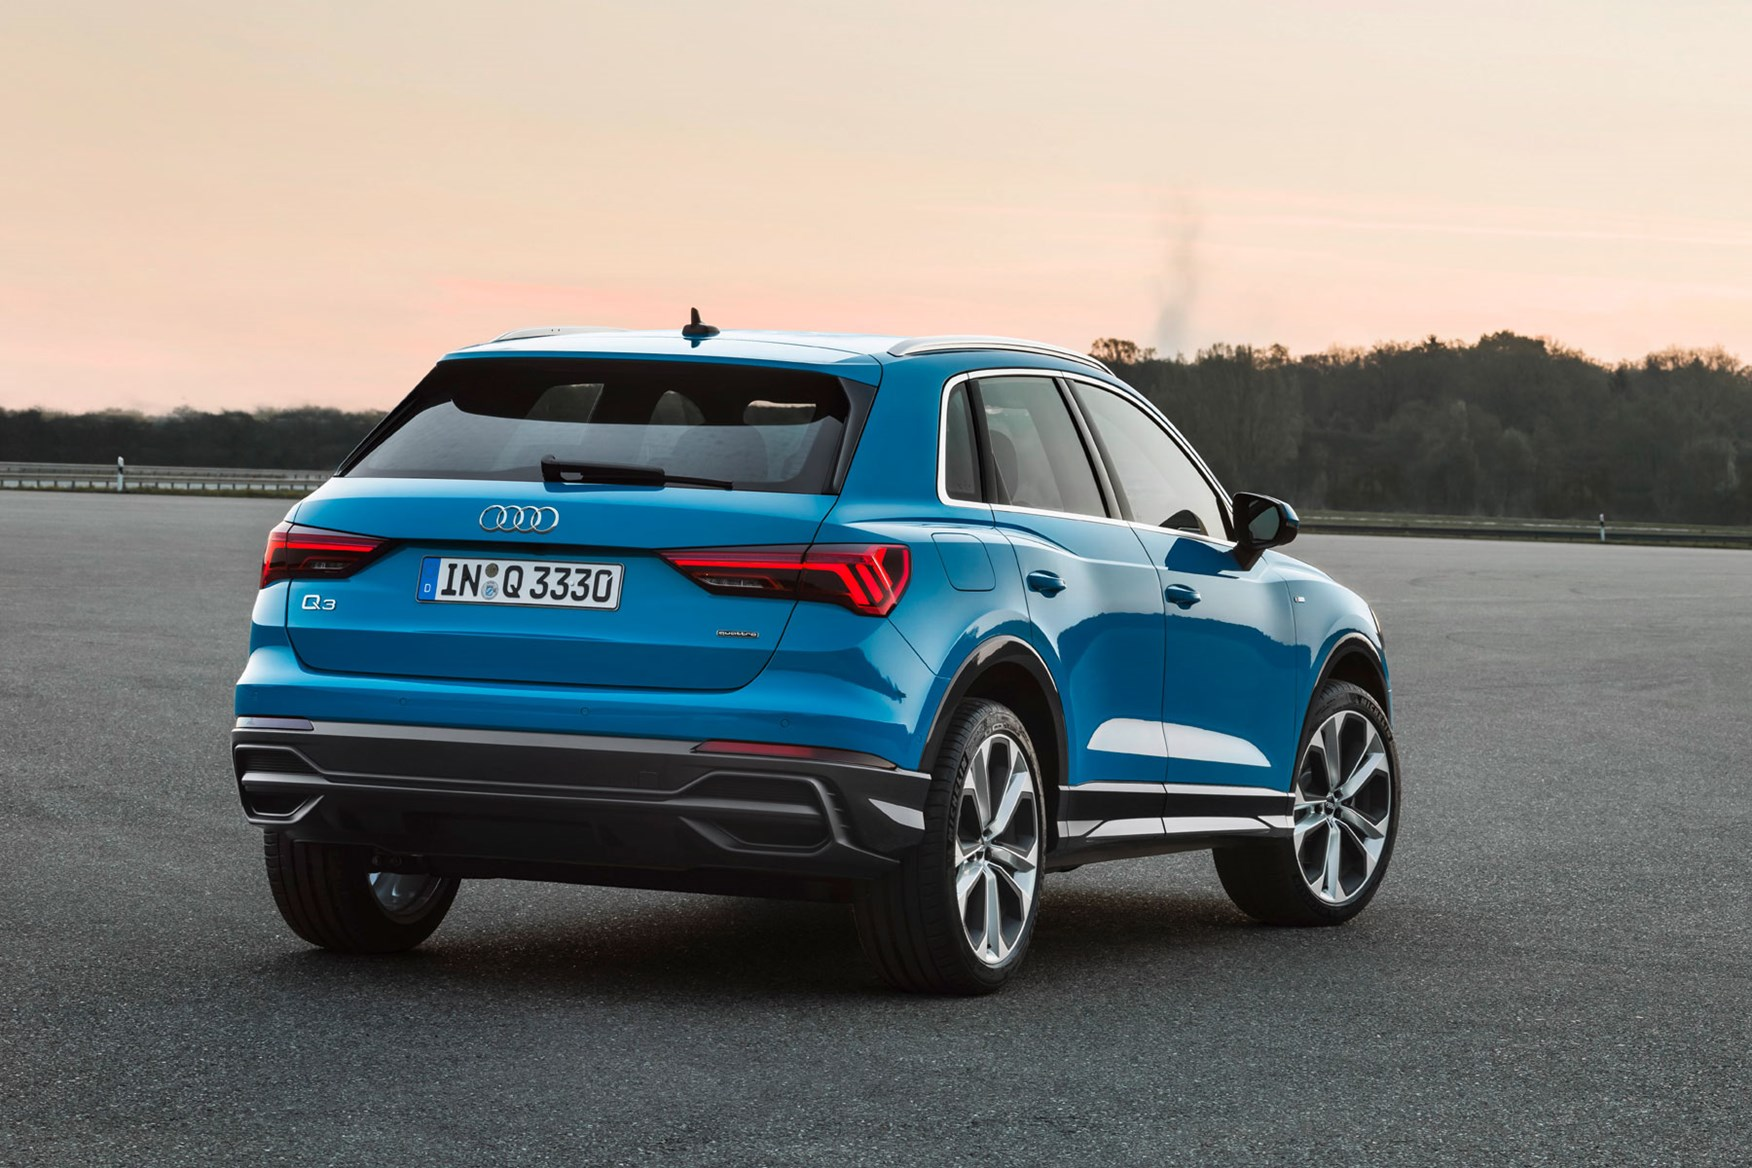 The rear end of the 2018 Audi Q3